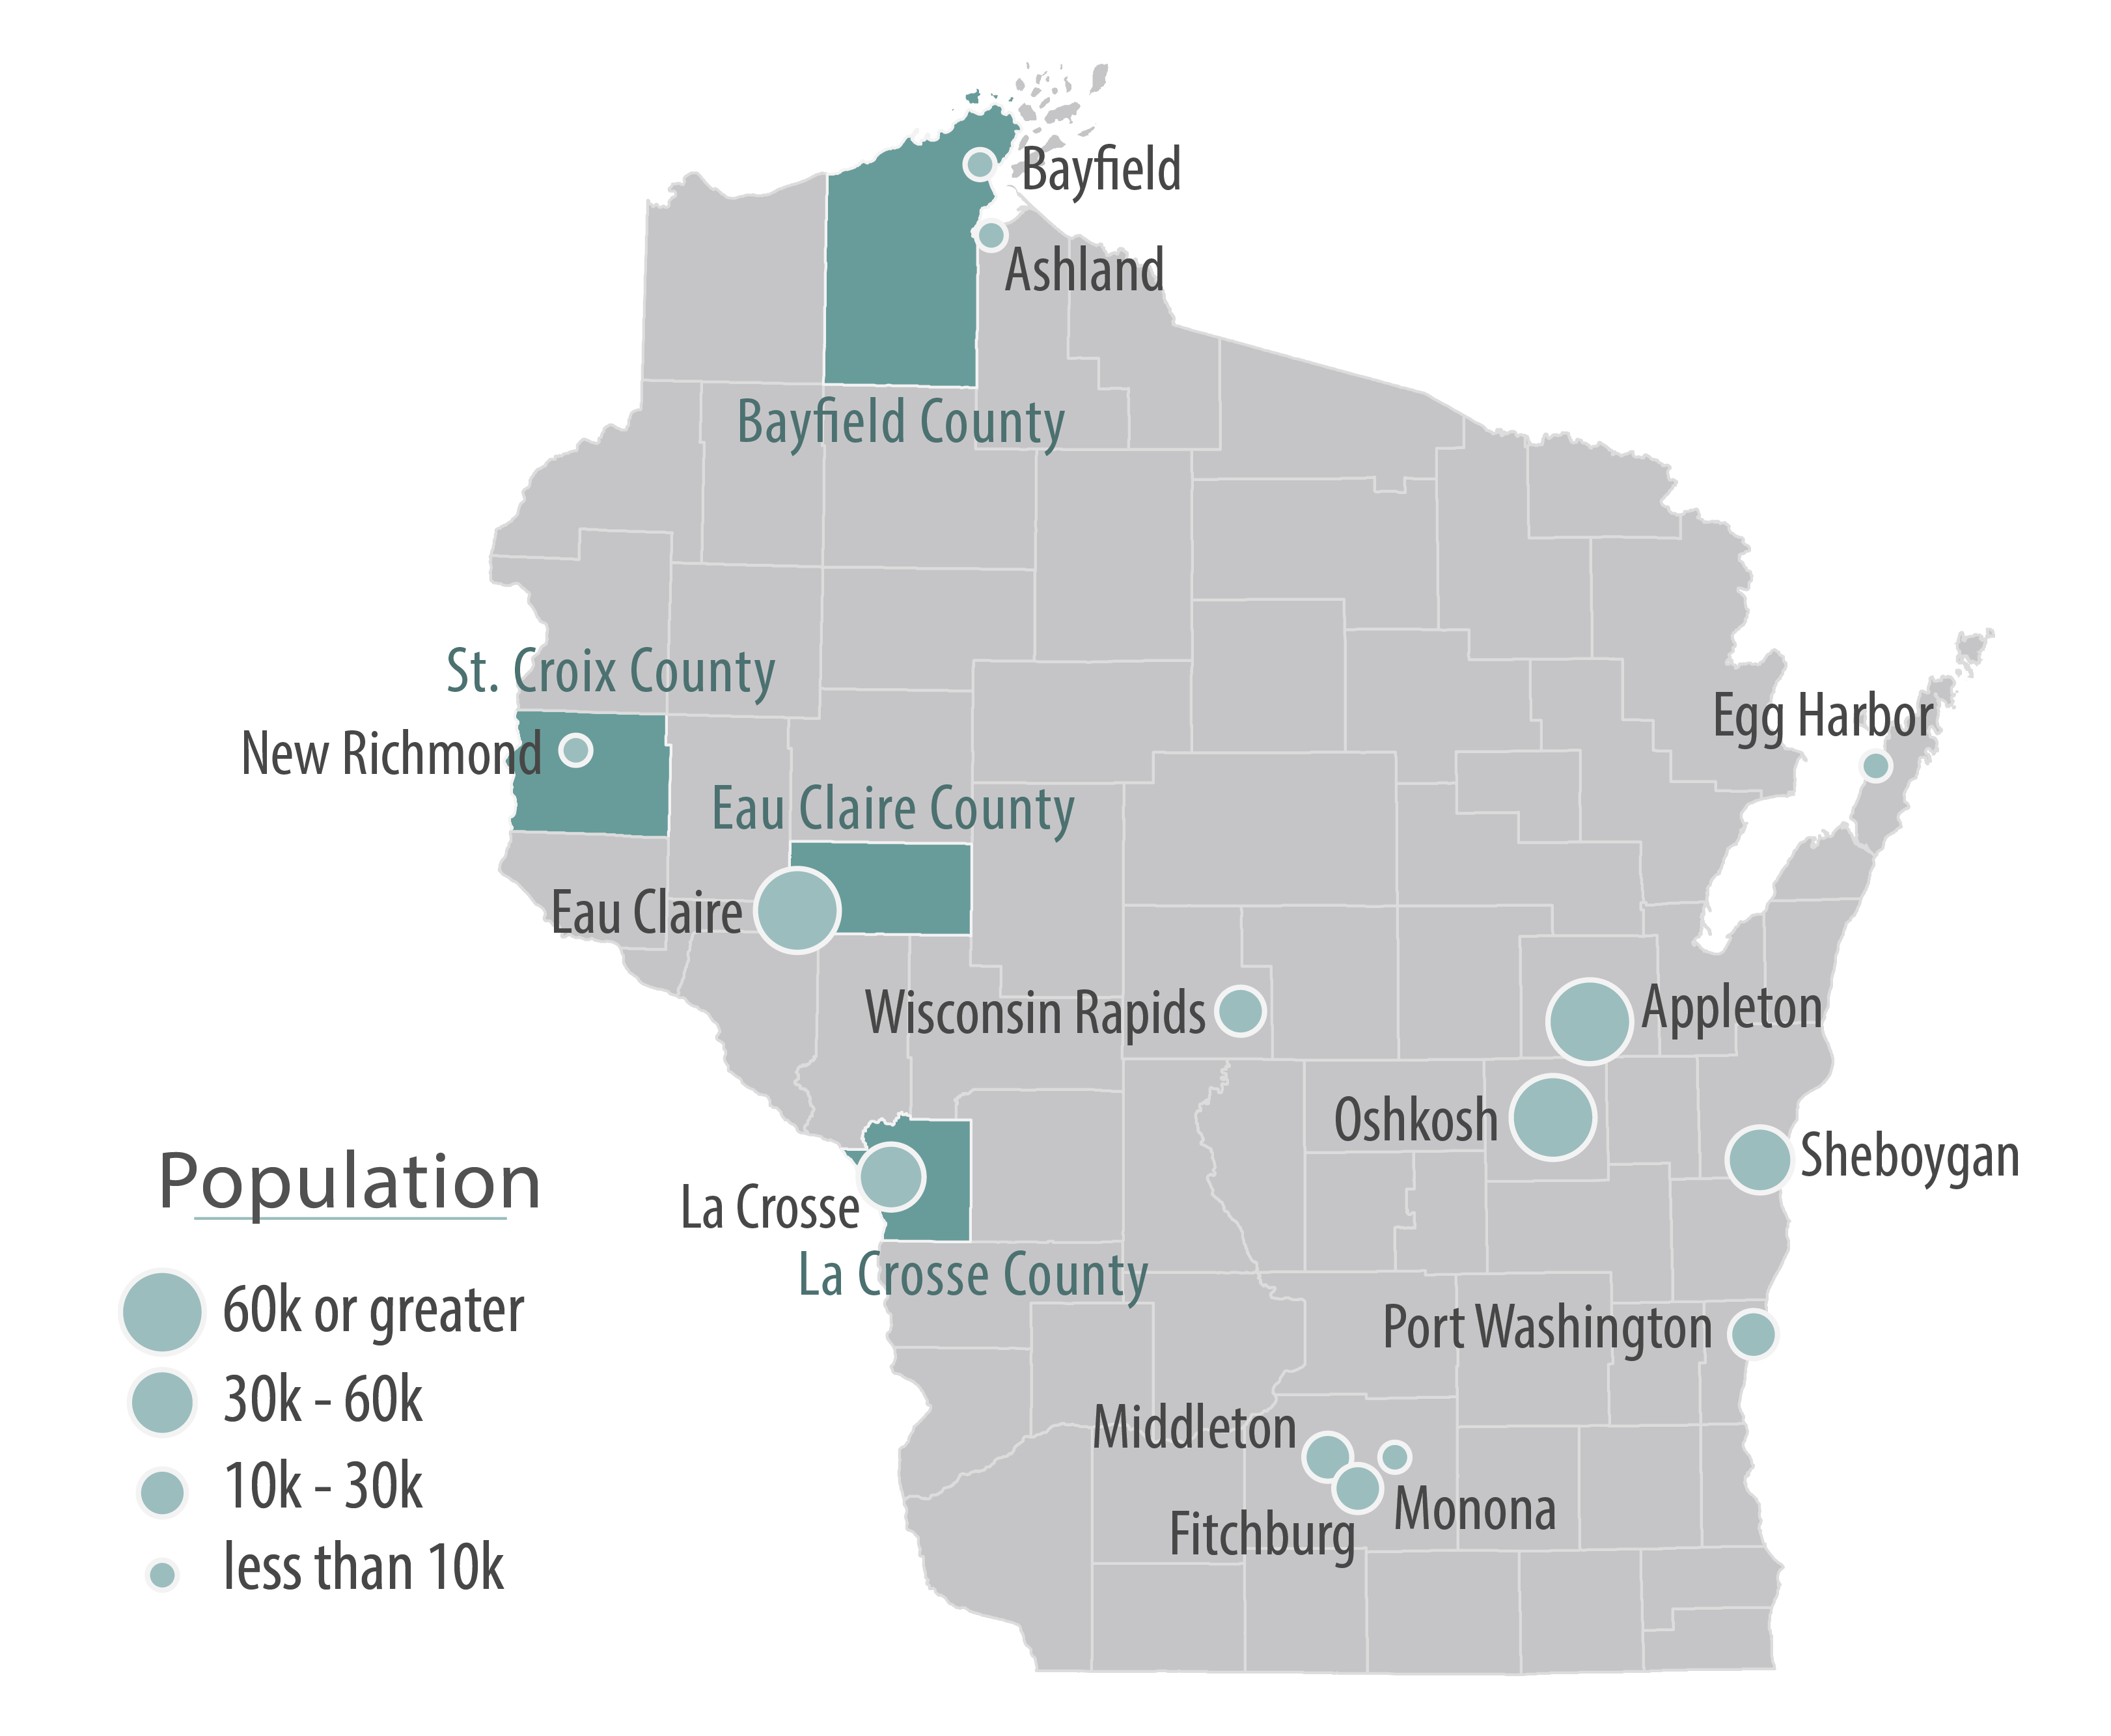 Cities and local counties involved in the Legacy Community Alliance for Health are highlighted on a map of Wisconsin